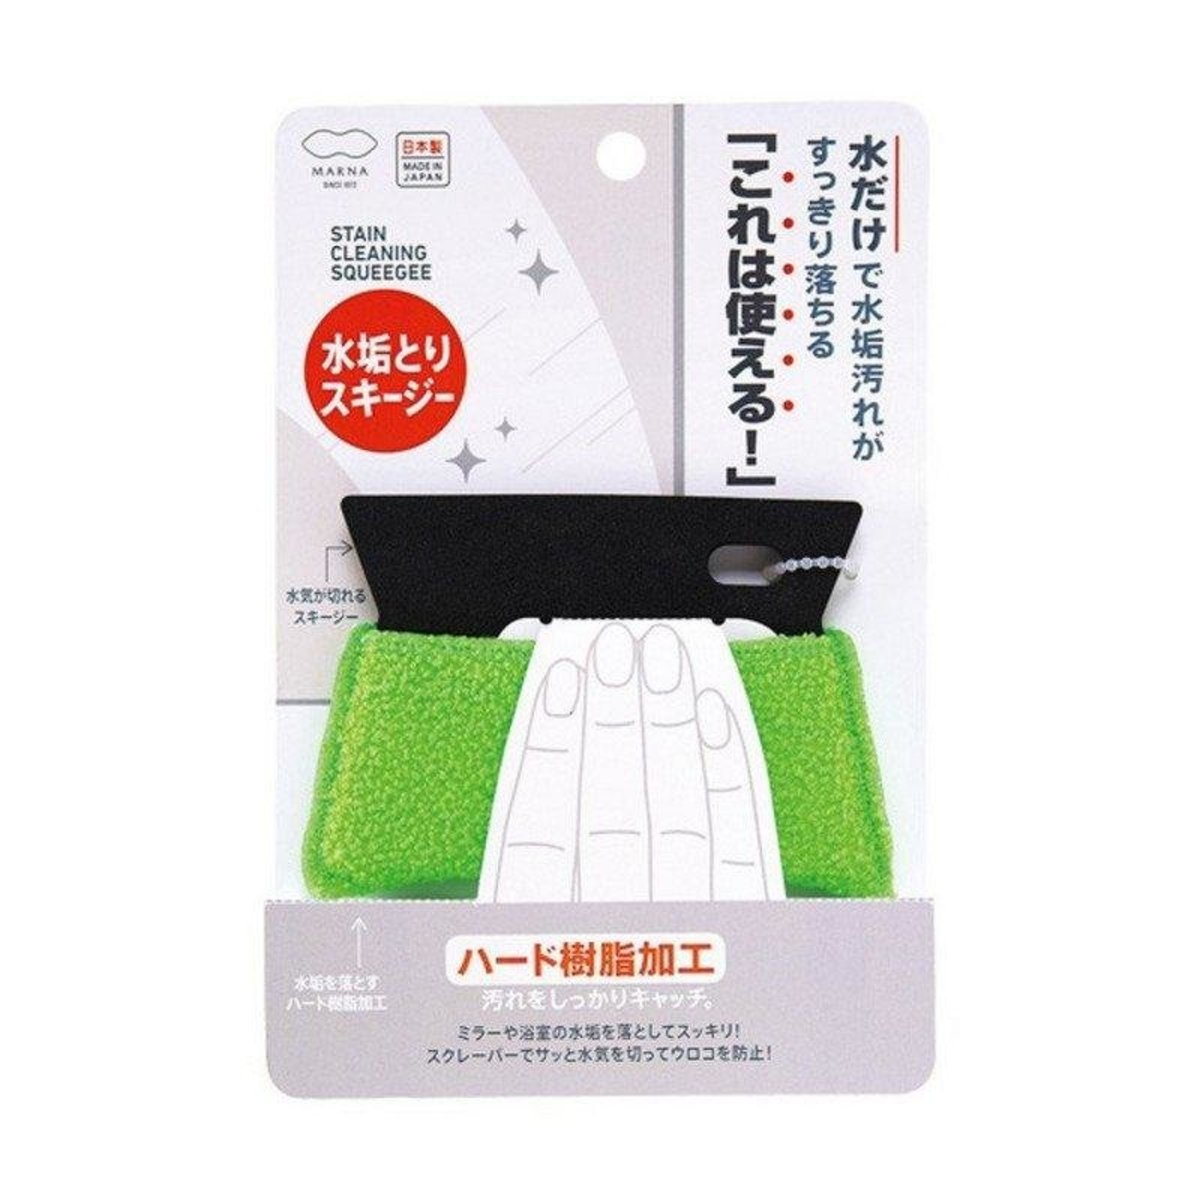 MARNA 2-in-1 mirror cleaning scraper, one piece green